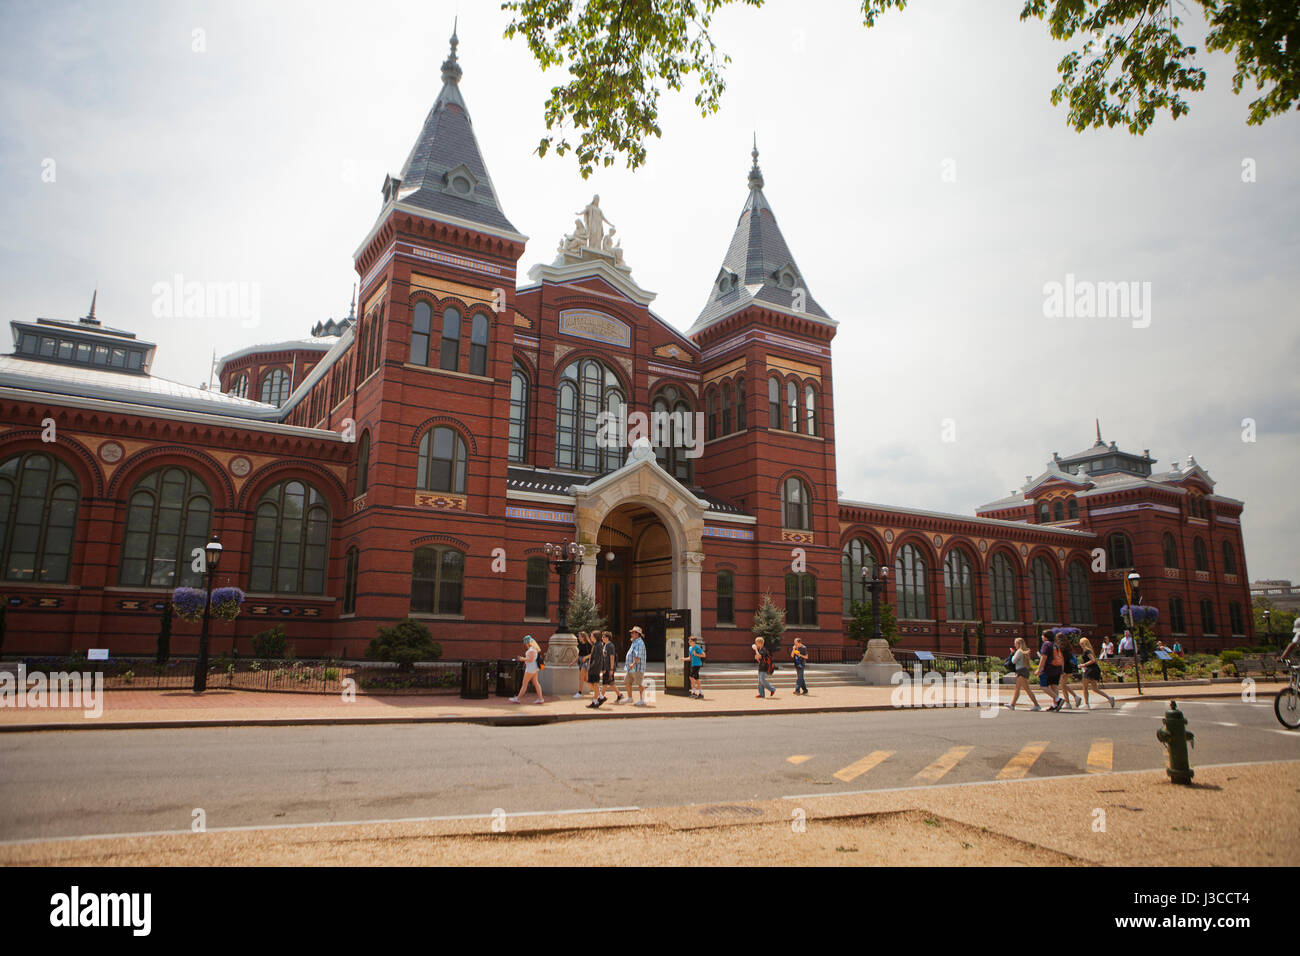 Smithsonian Institution Arts and Industries building - Washington, DC USA - Stock Image